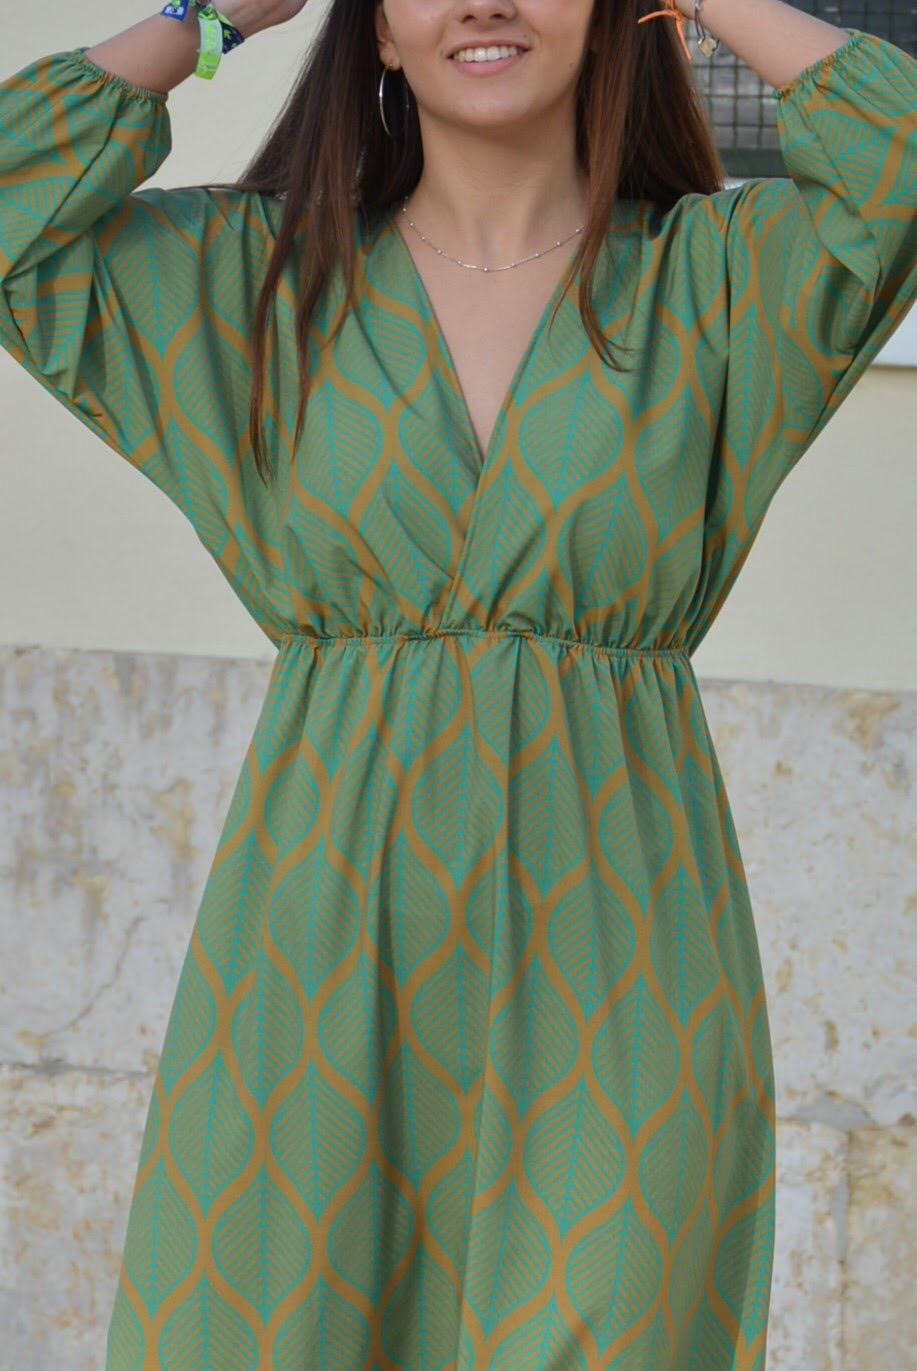 Vestido/dress MACHU PICCHU amarelo/yellow